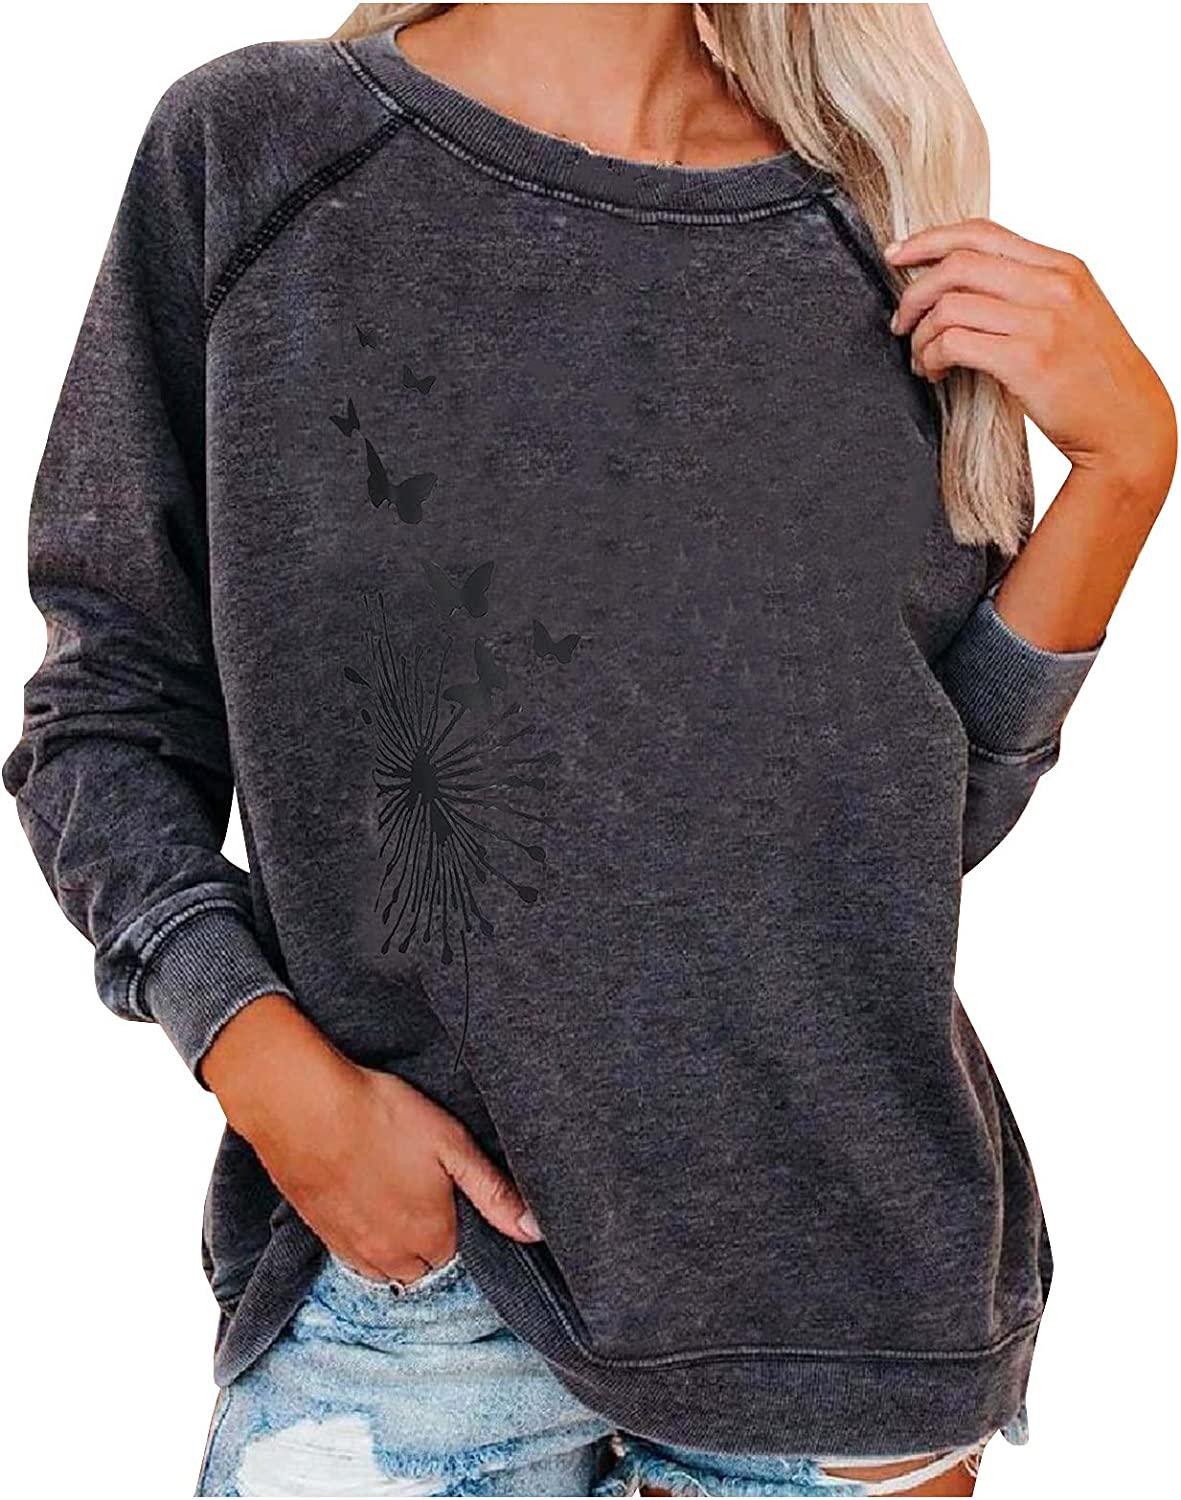 Cristophes Womens Fashion Solid Limited price Color SweaterLong O Omaha Mall Sleeve Print